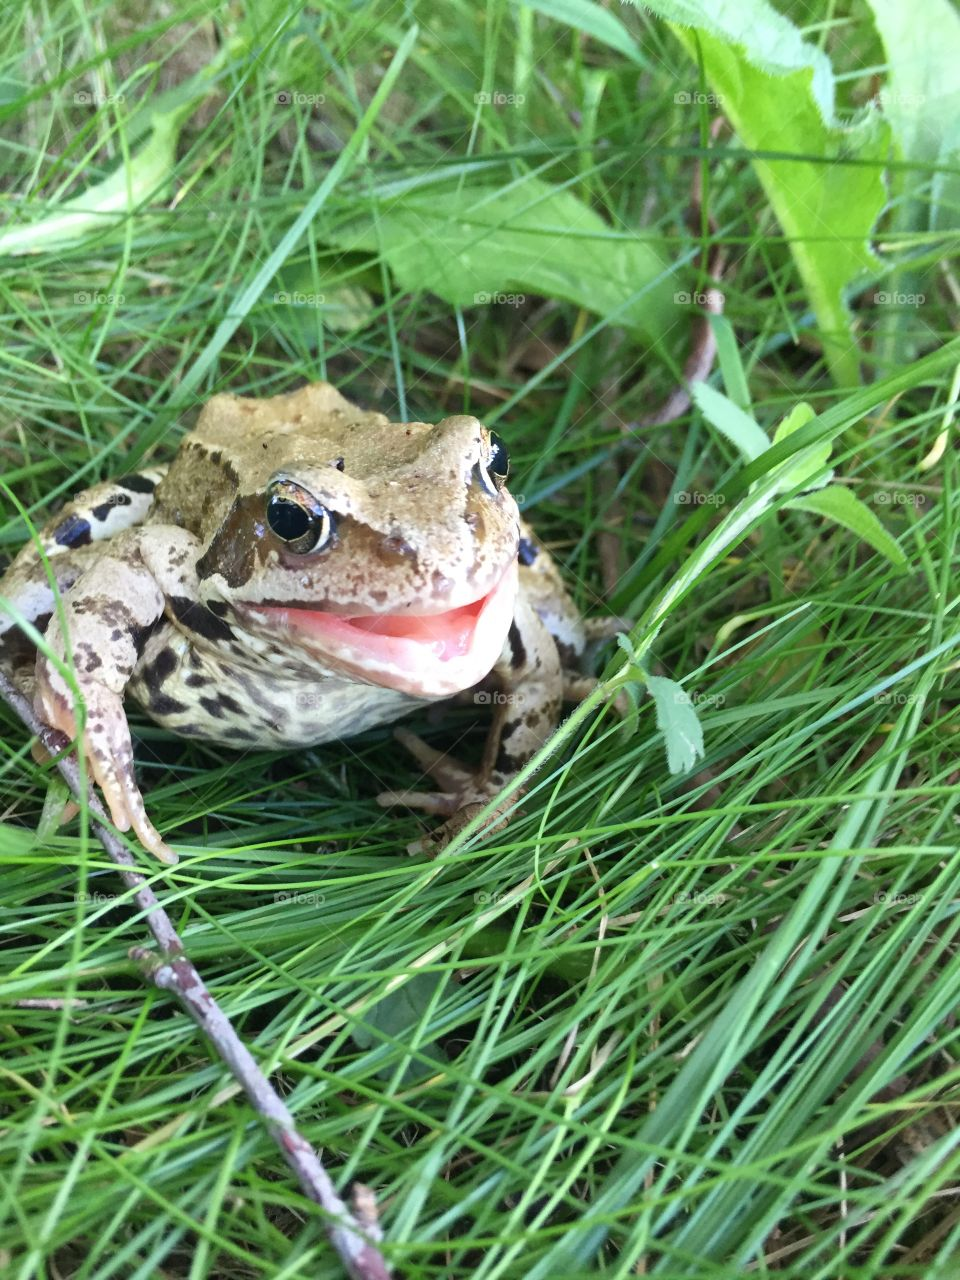 Croaking frog on the grass